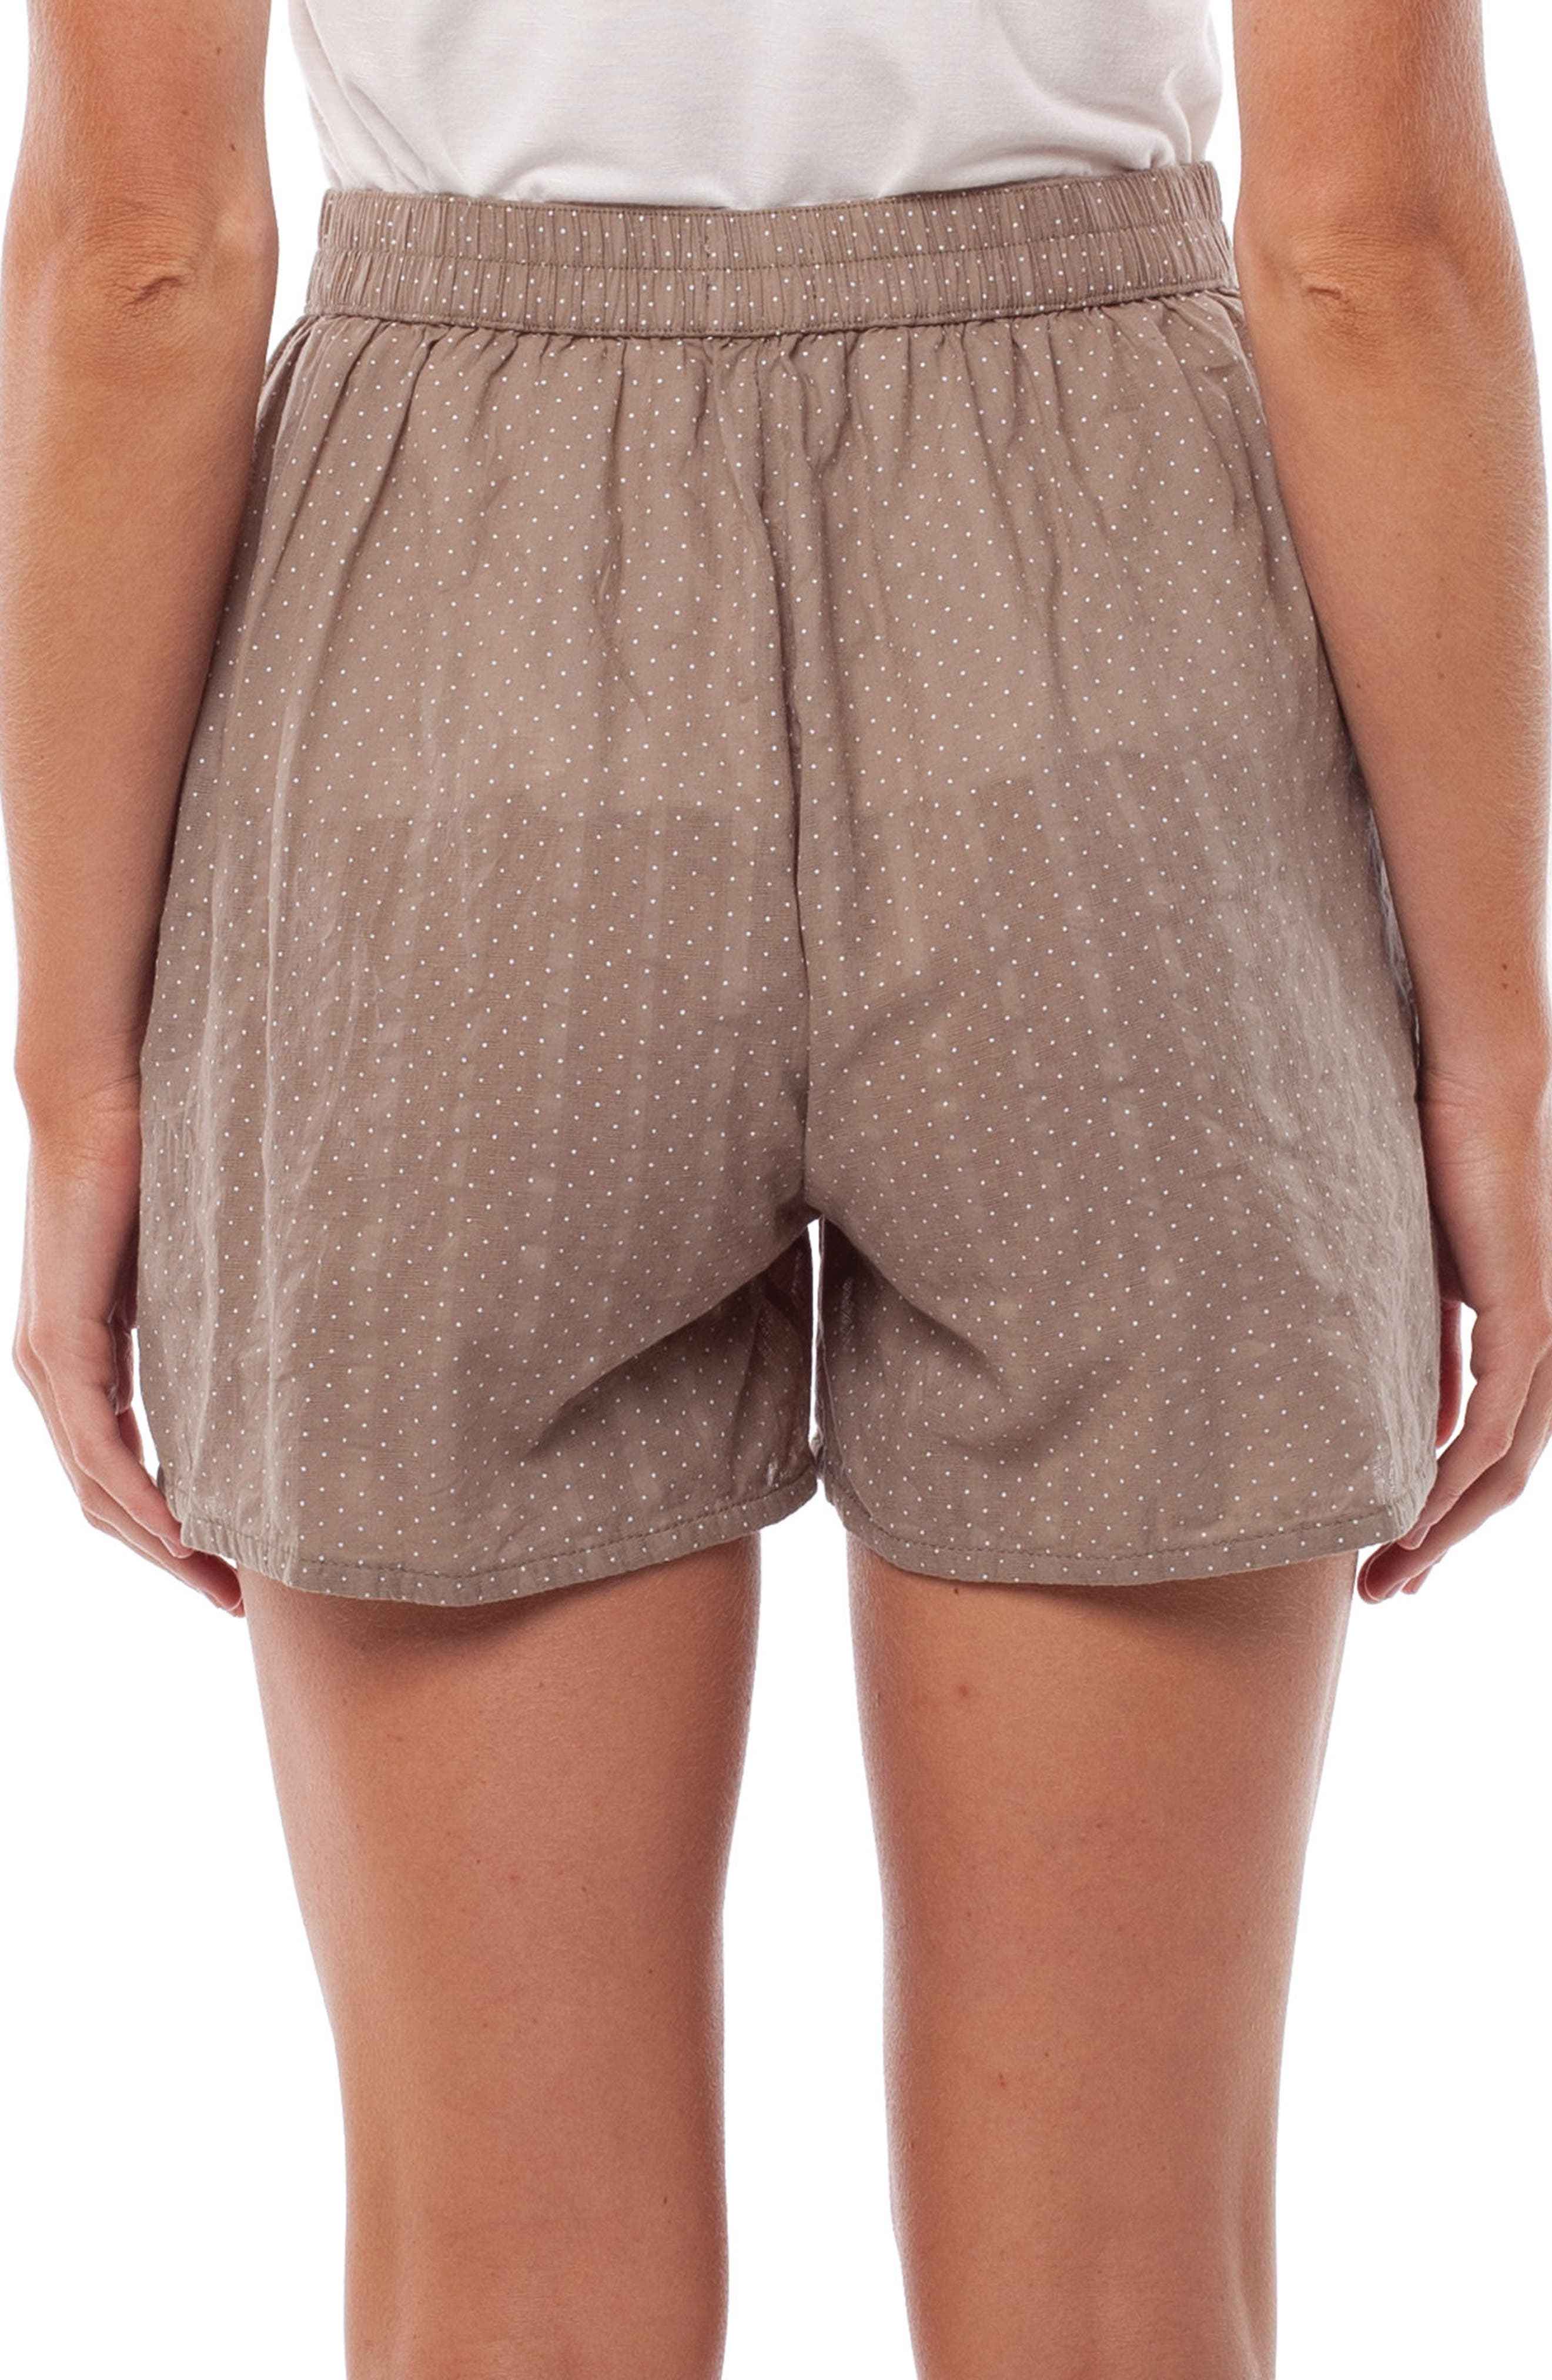 Messina Cover-Up Shorts,                             Alternate thumbnail 2, color,